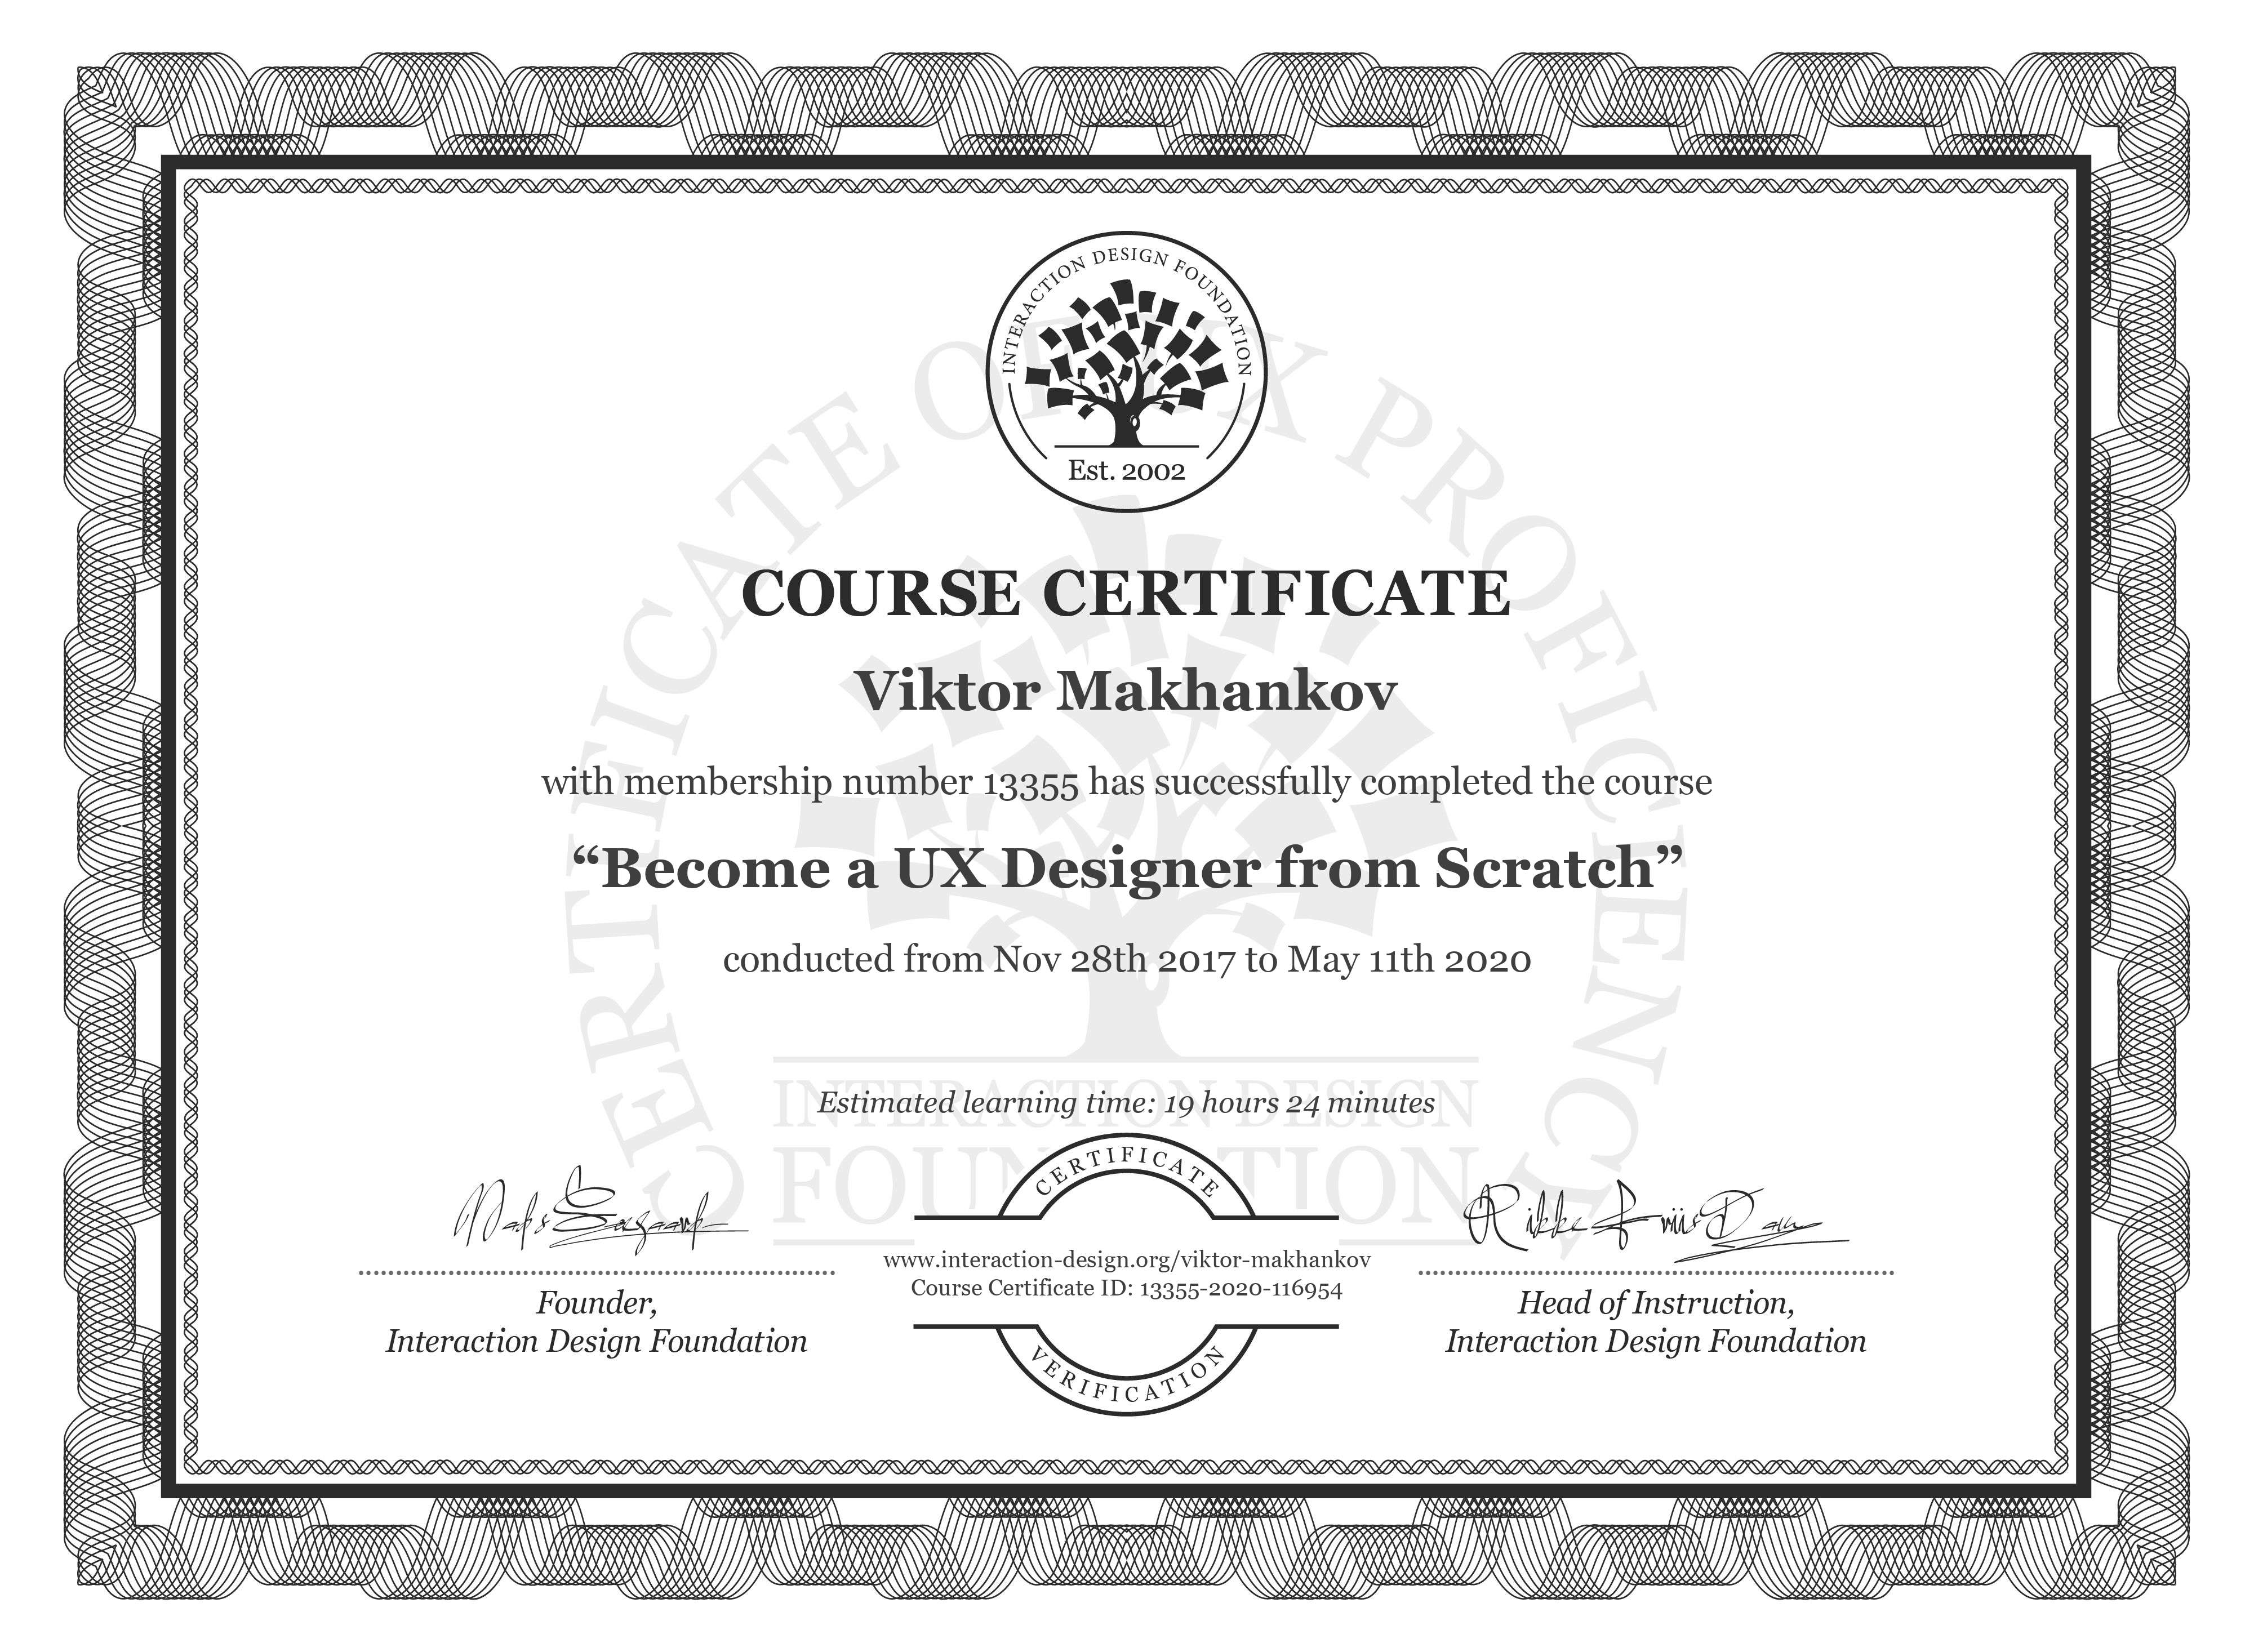 Viktor Makhankov's Course Certificate: User Experience: The Beginner's Guide